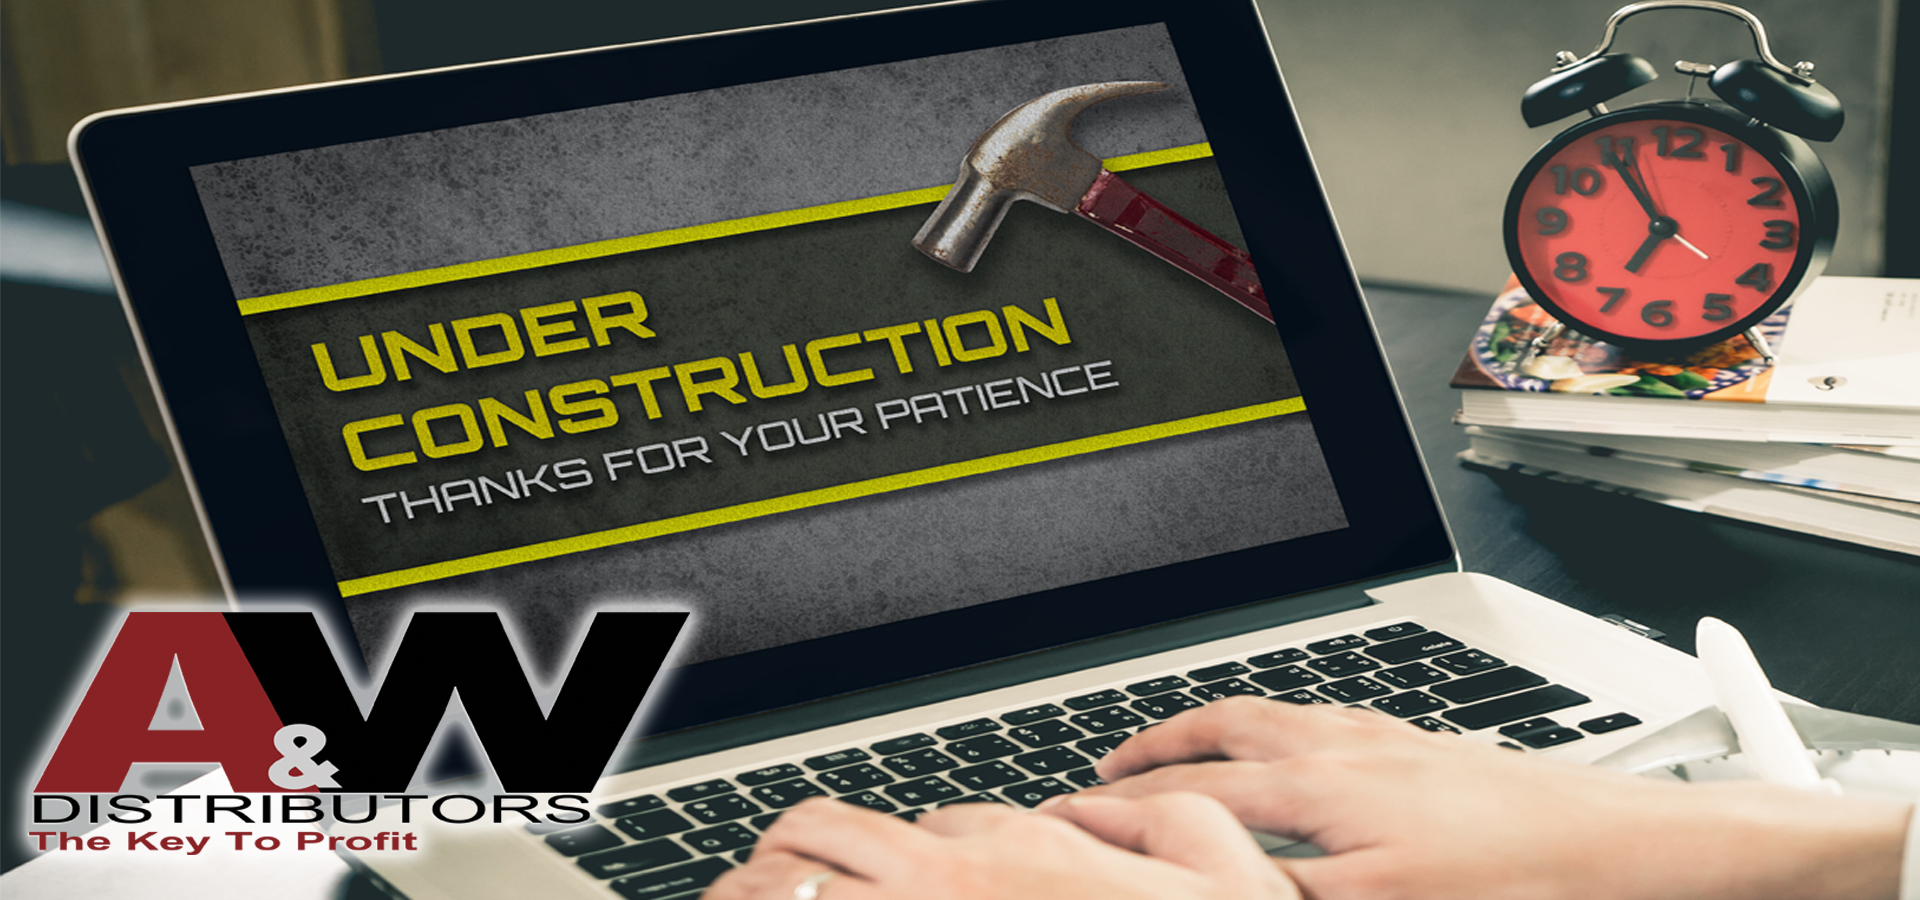 Our website is under construction, we are sorry for any inconvenience